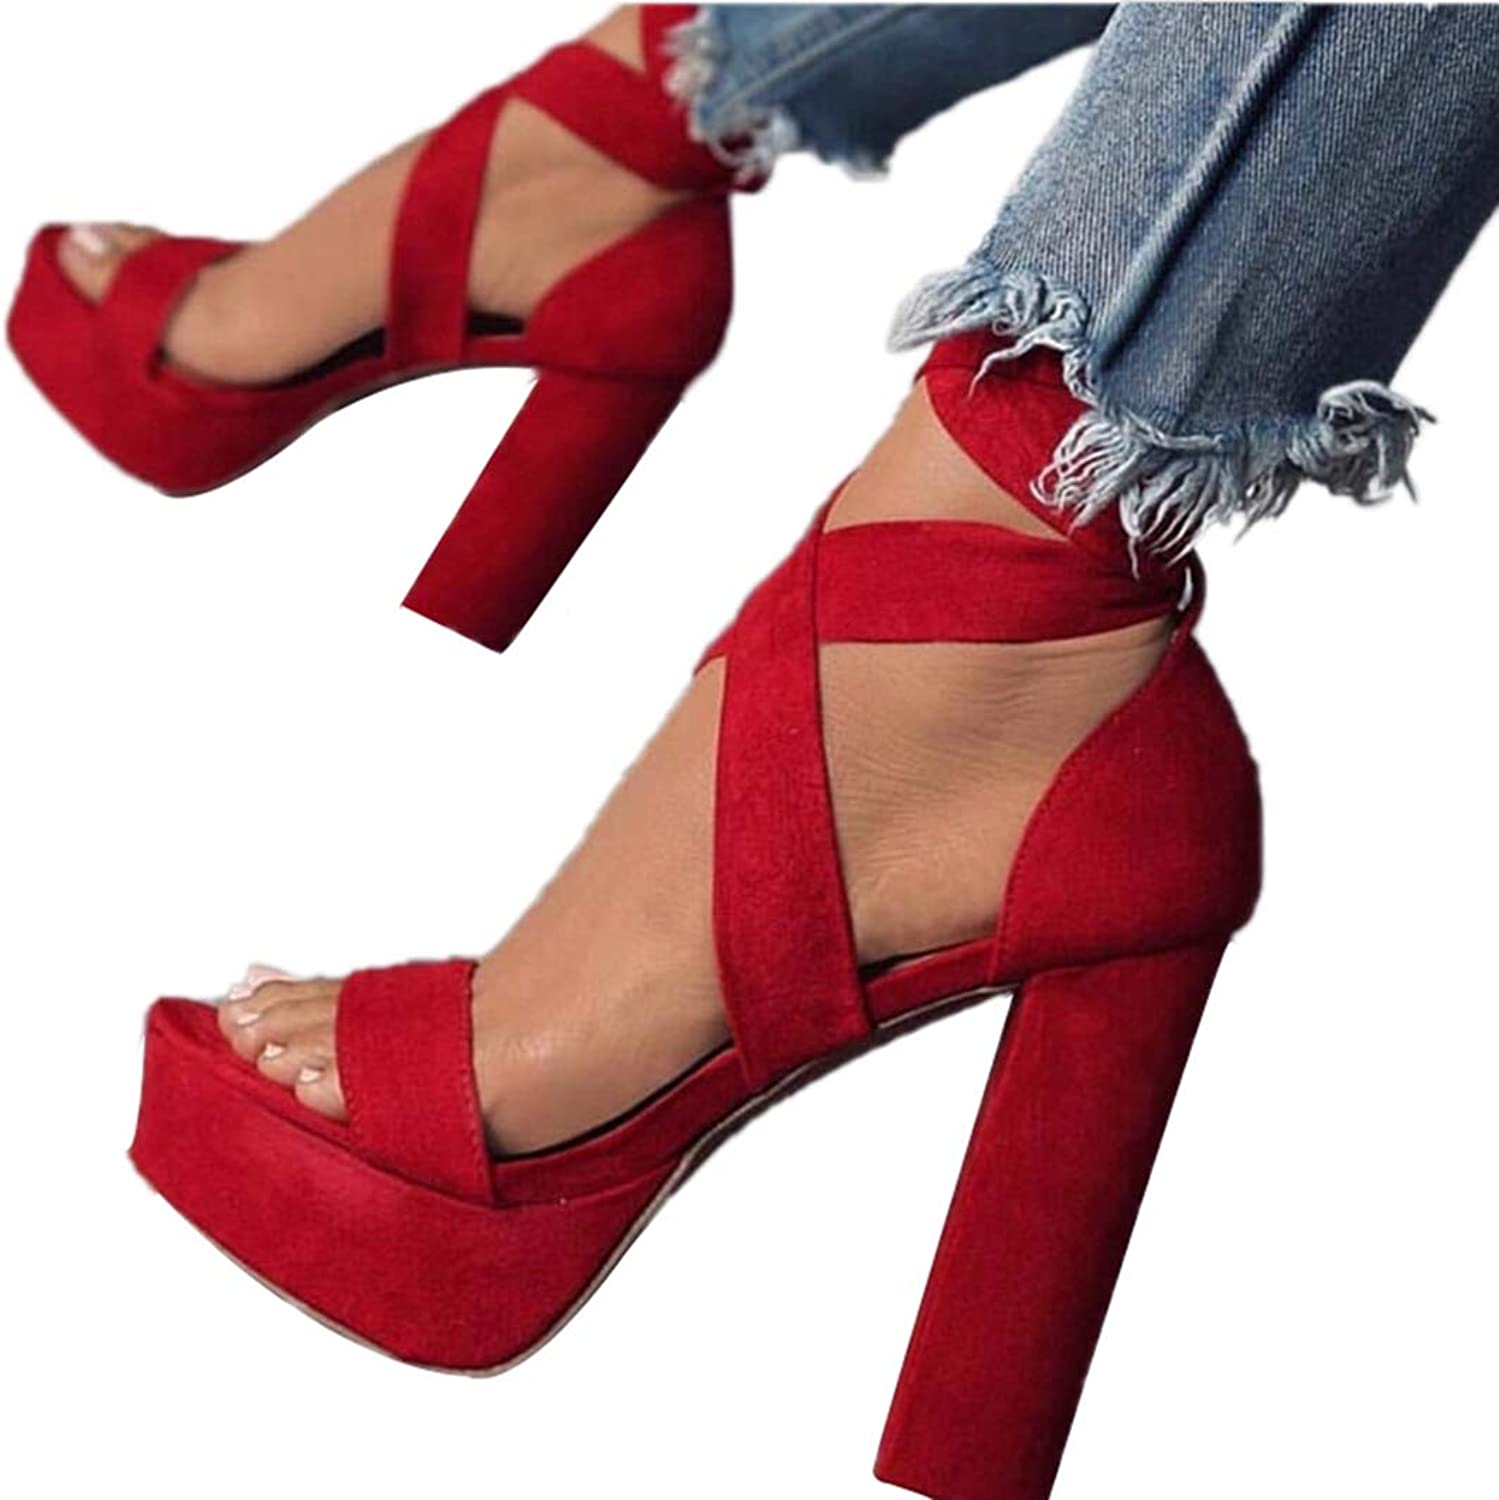 Women's Sandal Red Cross Lace-up Thick Heel High Heel shoes Open Toe Pumps Heeled Sandals